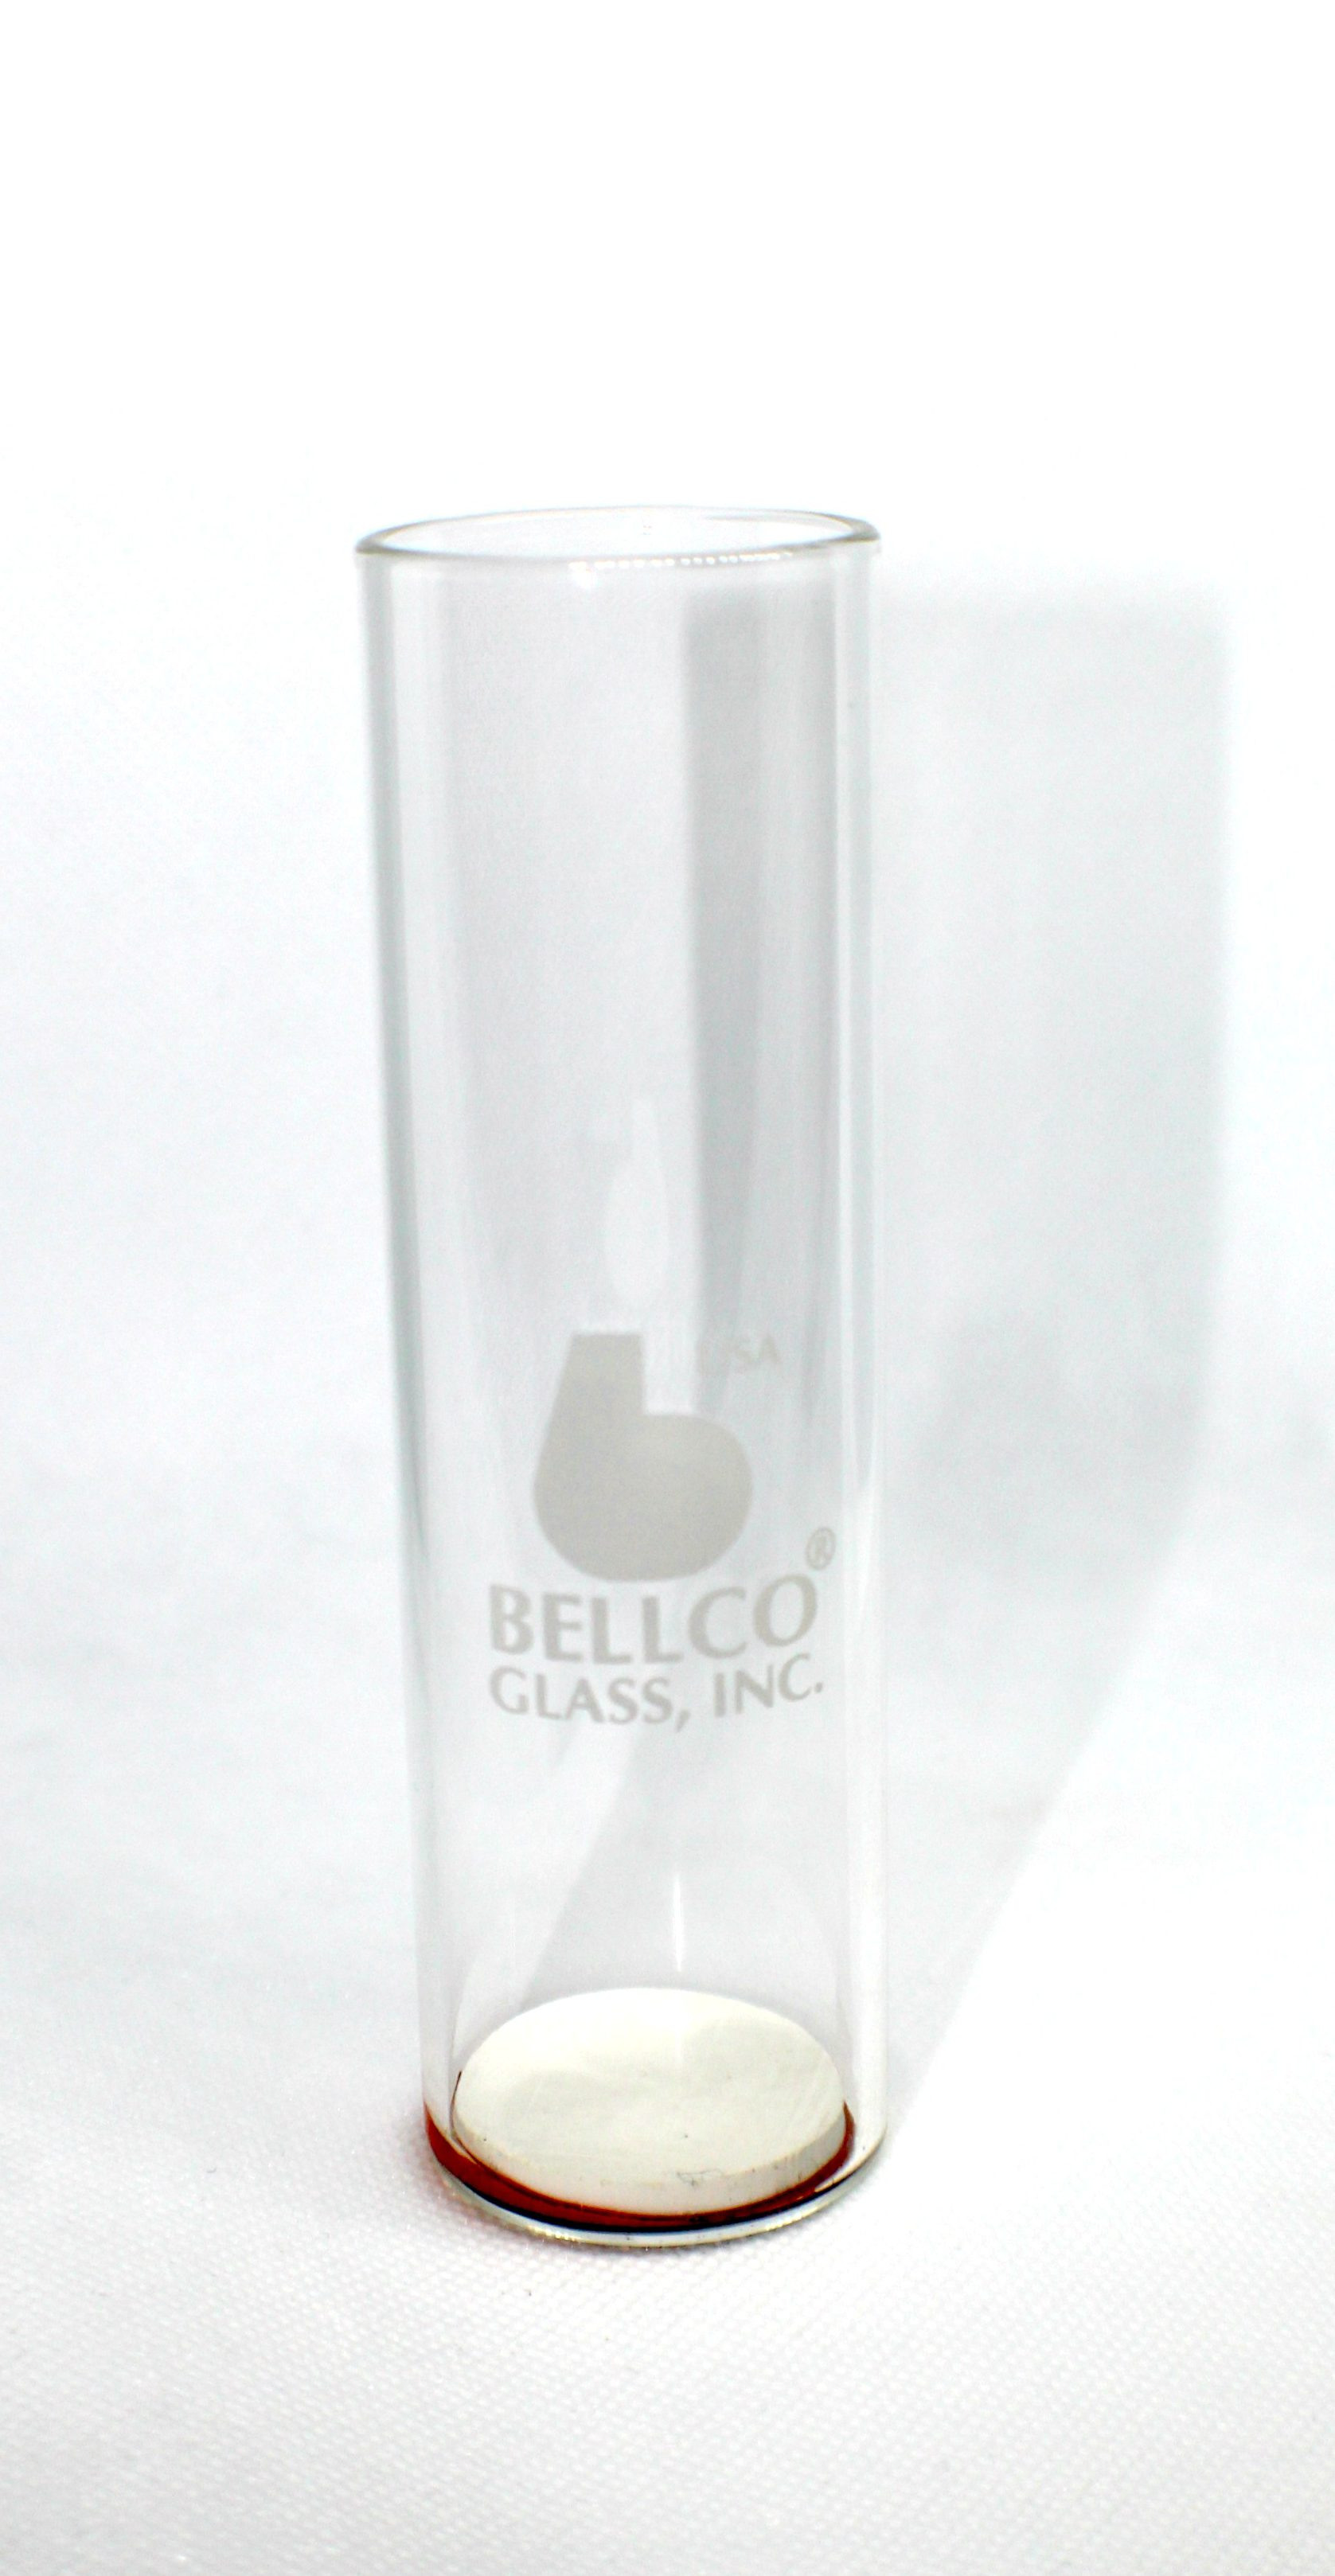 bellcoglass/Flat Bottom Glass Pipette Canister w/ & w/o Silicone Pad and 38mm Stainless Steel Closure/Search for:/1290-00130